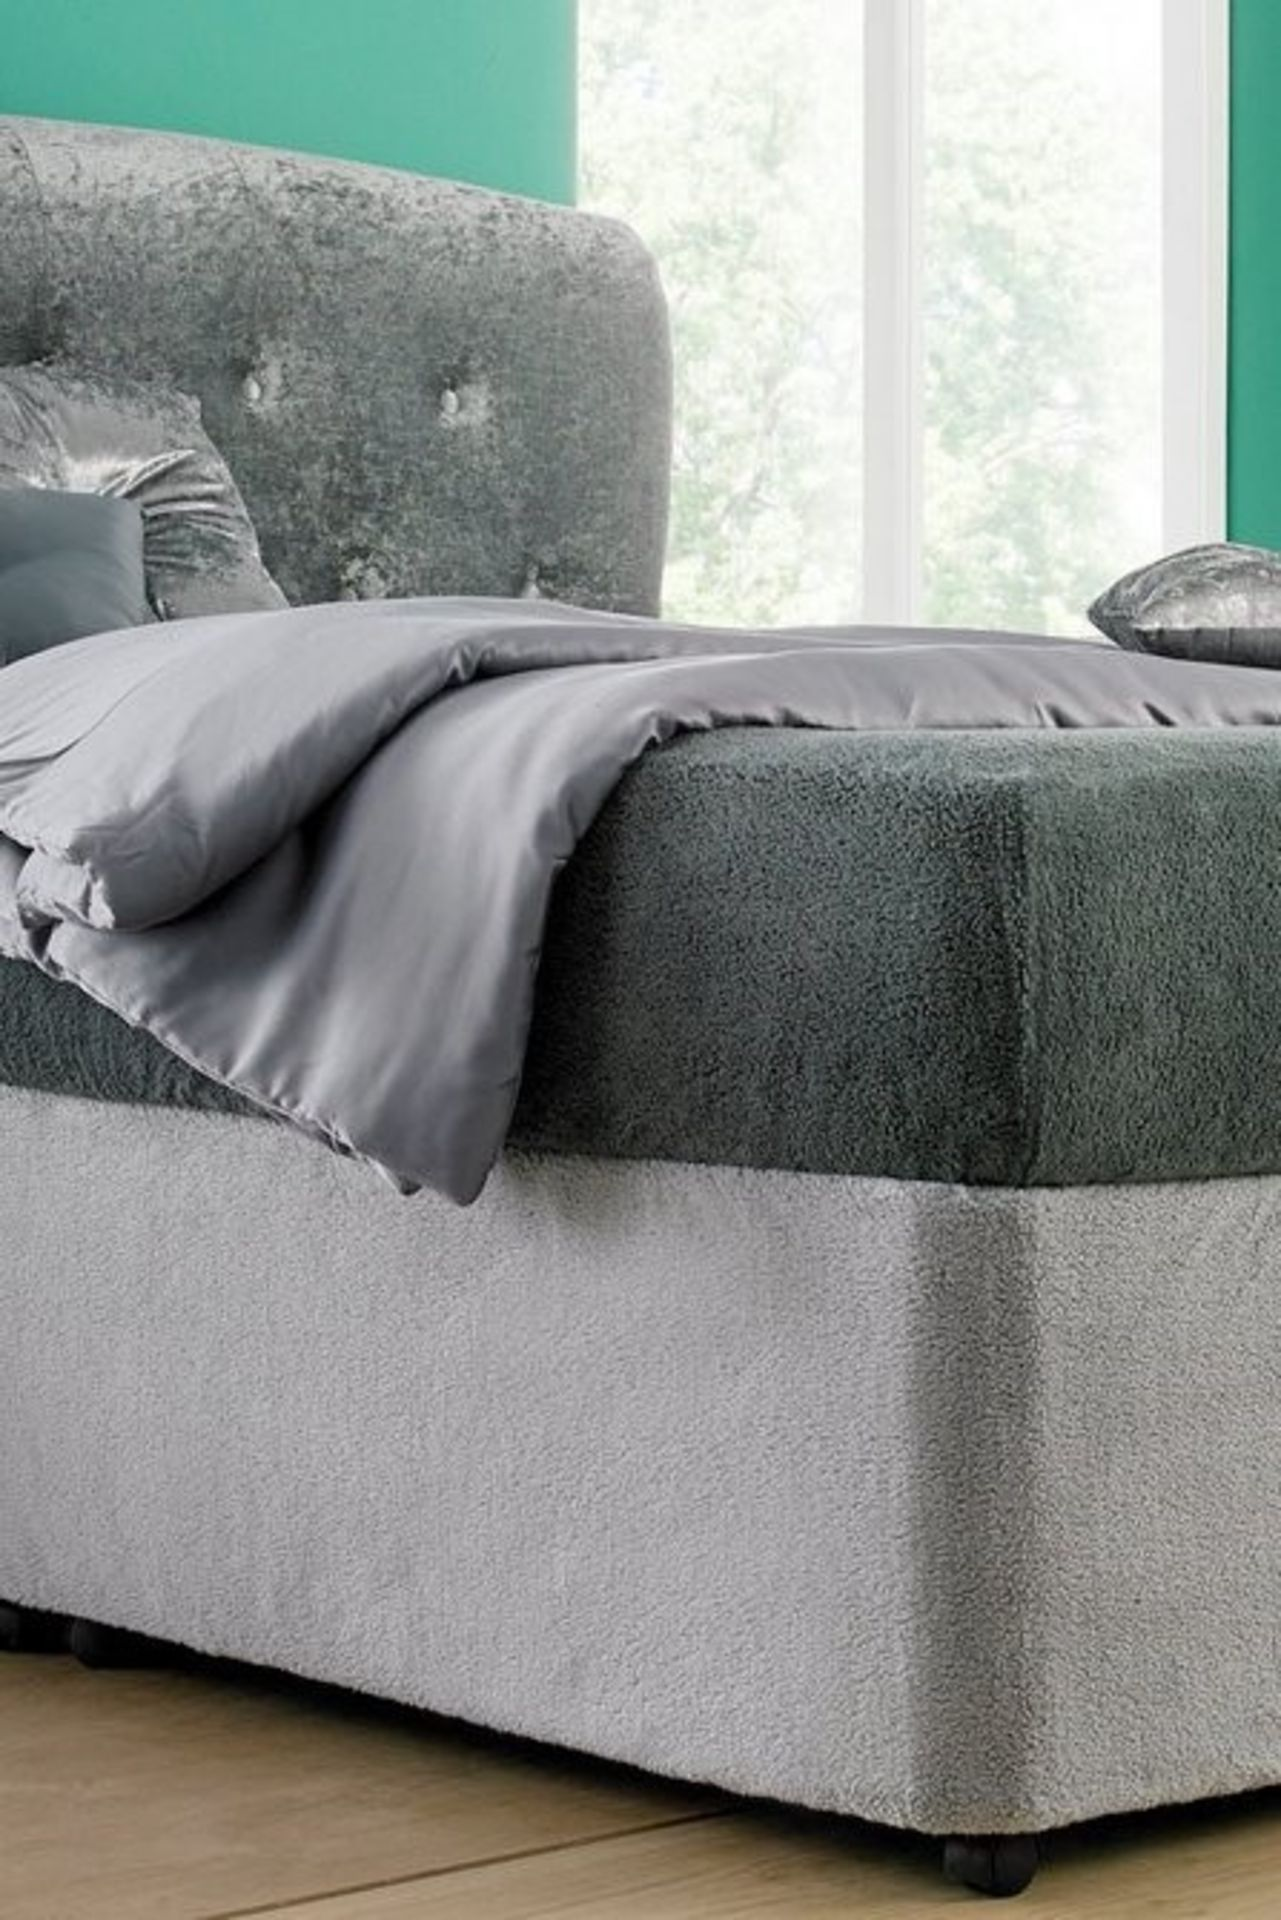 Lot 15 - 1 BAGGED DOUBLE ULTRA COSY BASE WRAP IN SILVER GREY (PUBLIC VIEWING AVAILABLE)